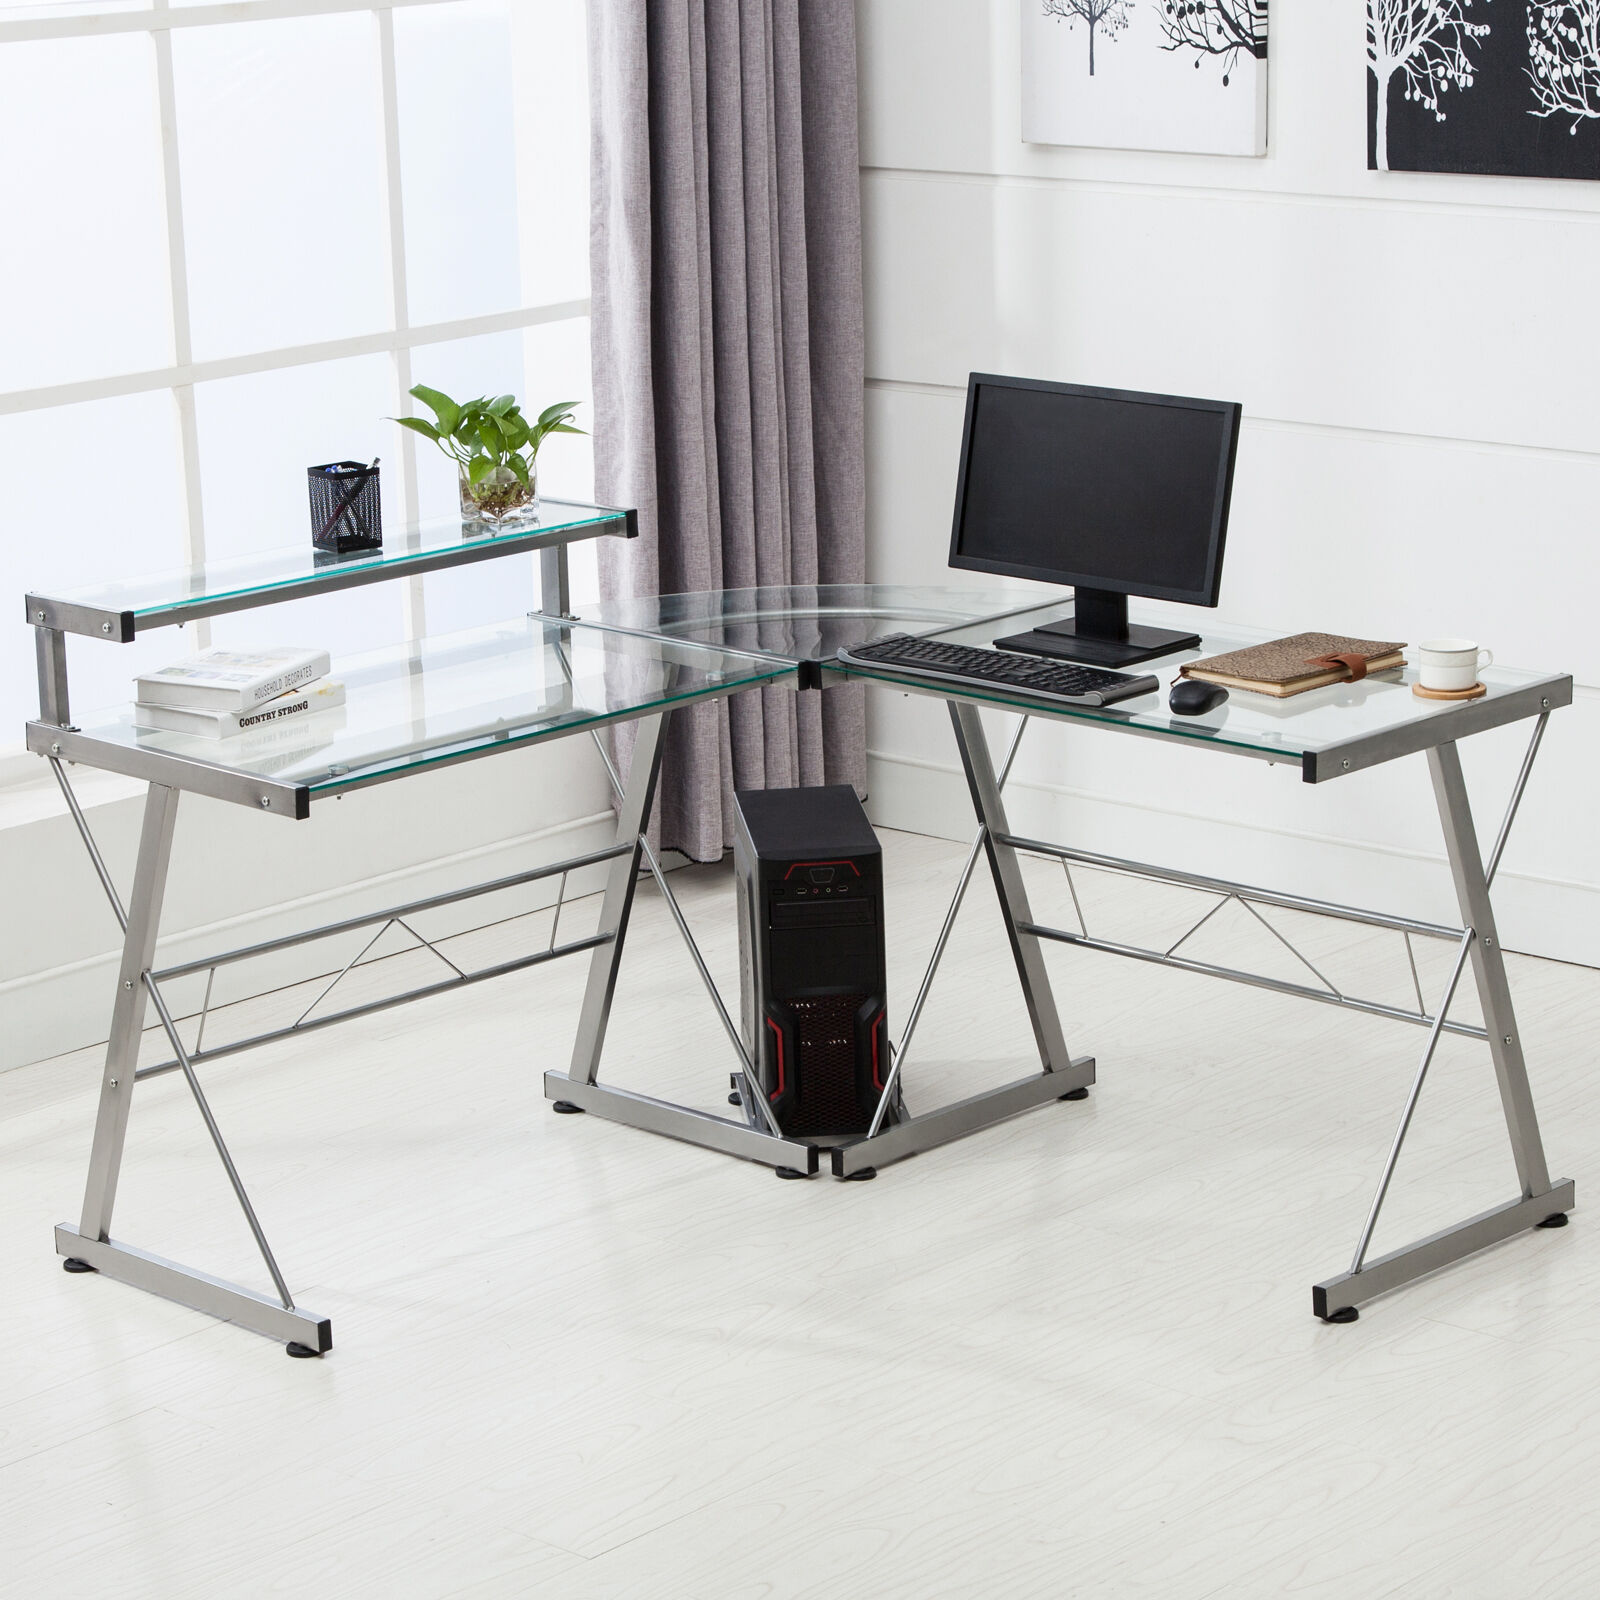 lshape corner computer desk pc glass laptop table workstation home office clear